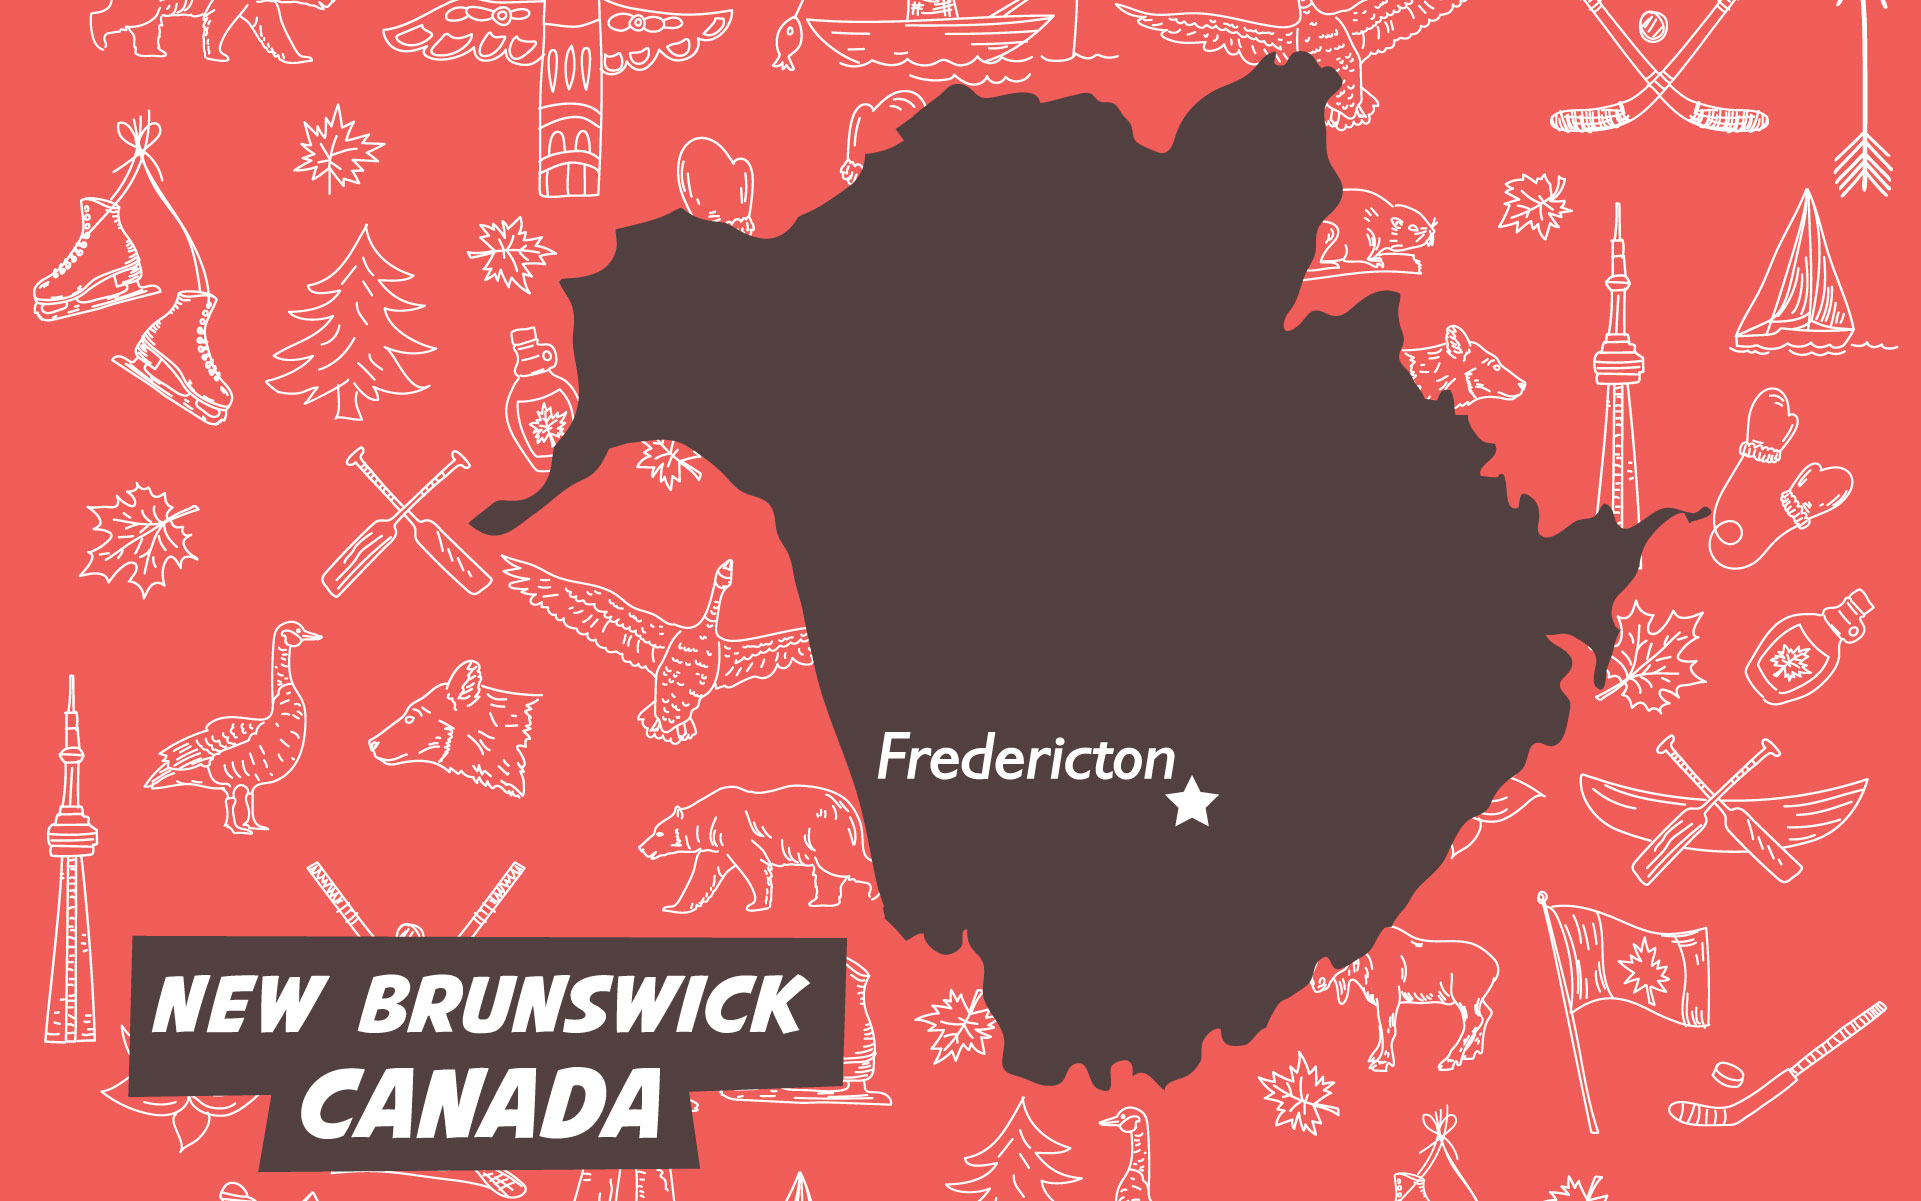 Recreational Cannabis Stores in New Brunswick